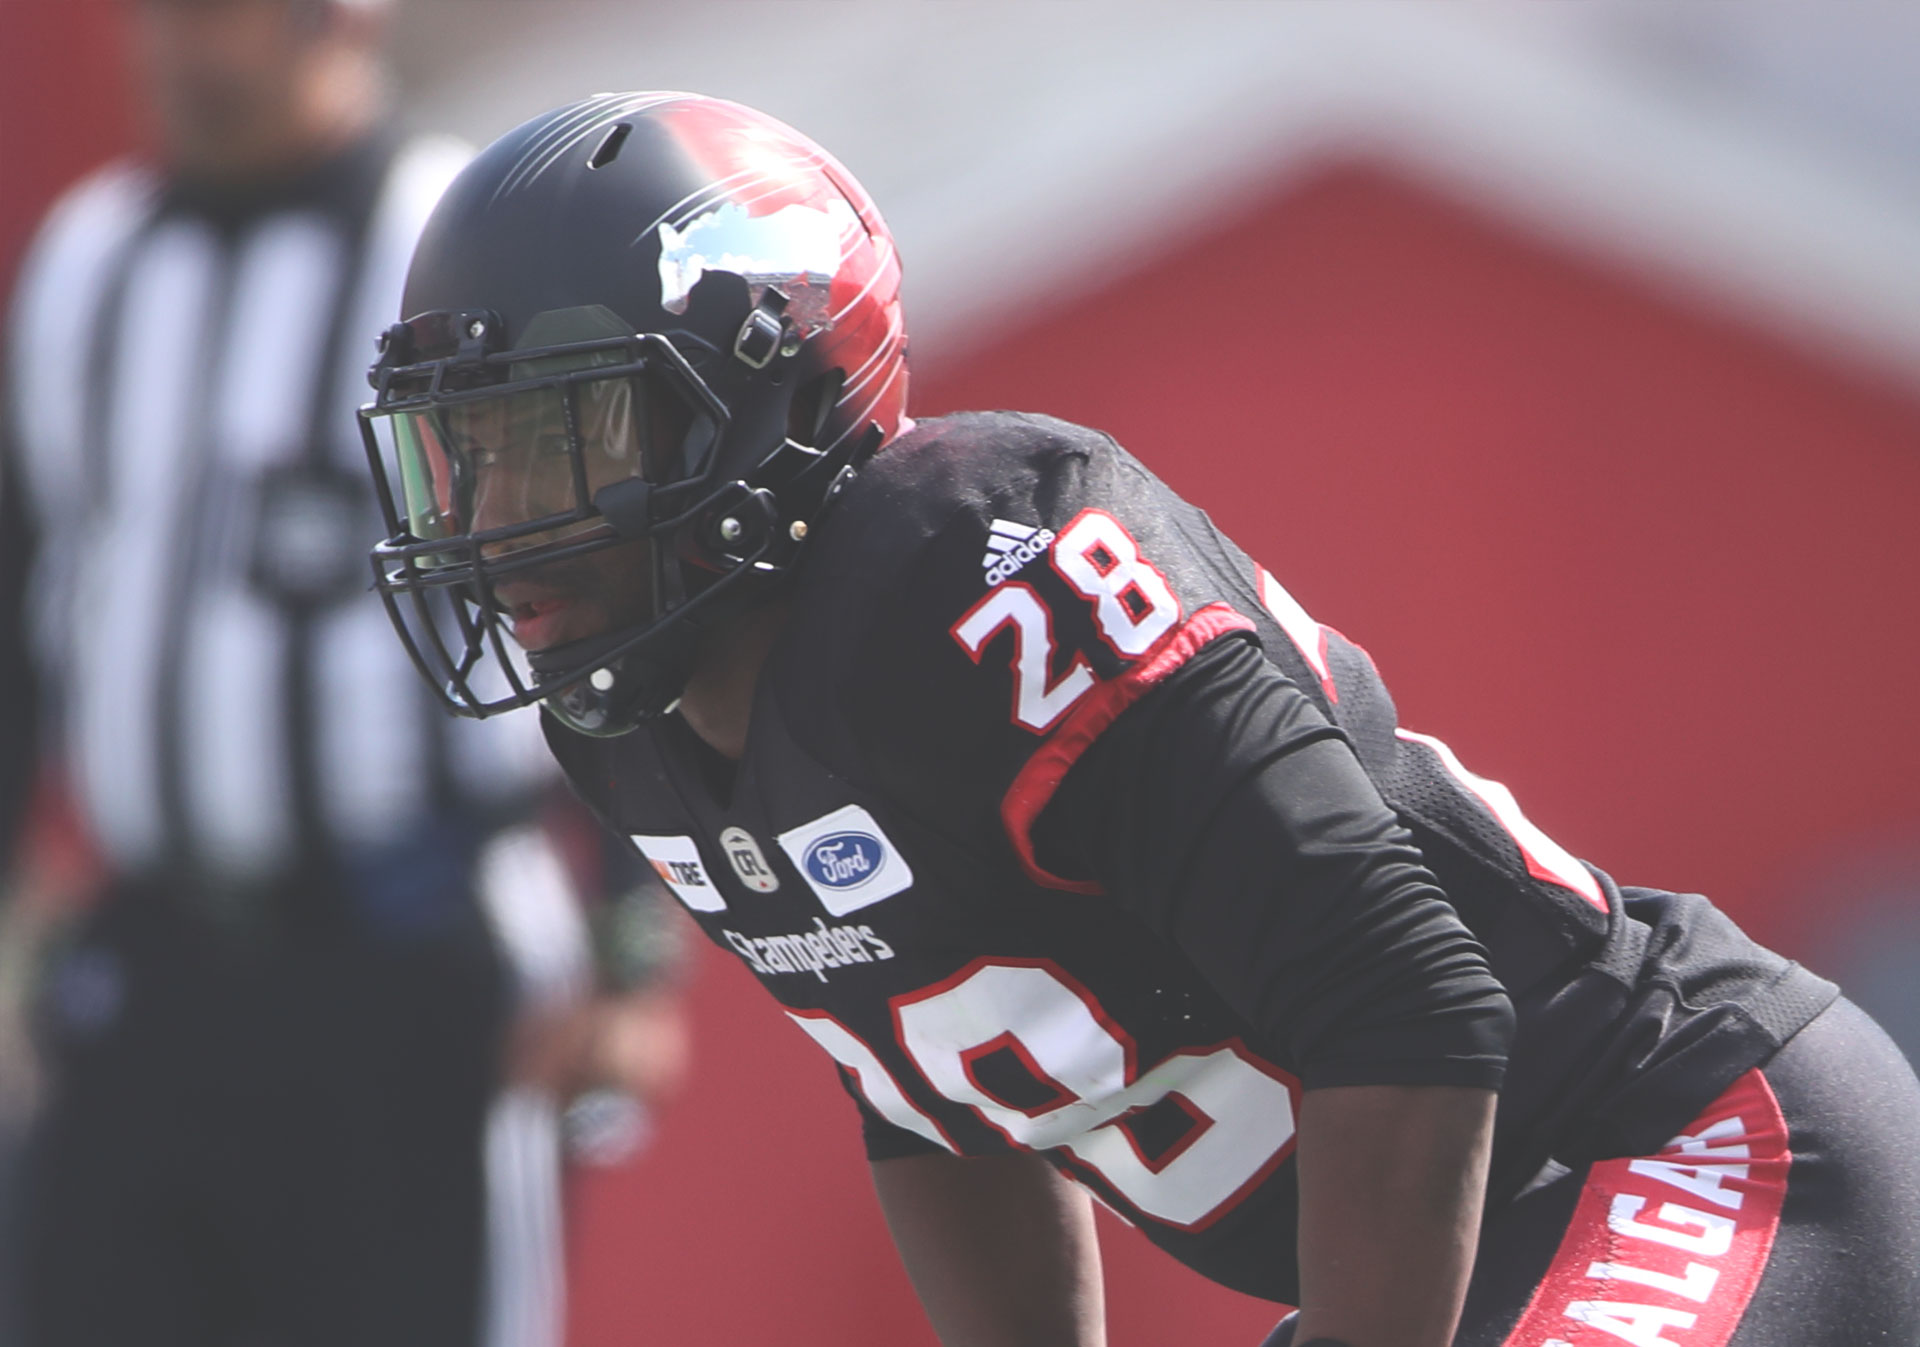 Get to know the Calgary Stampeders players before kickoff.